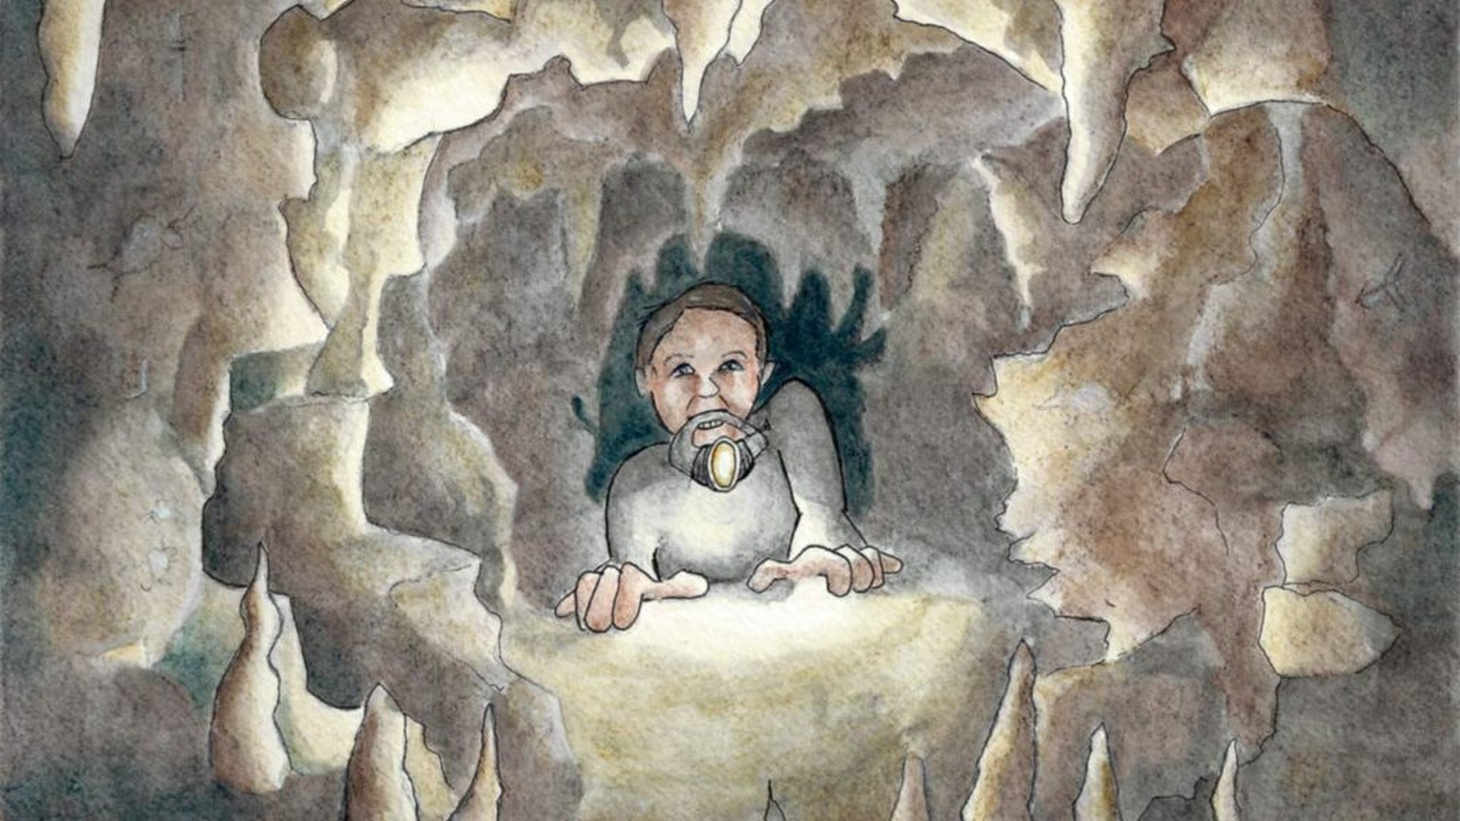 There is a cave in southern France that contains some of the world's most deeply hidden secrets. To get there you must crawl on your belly through a long tomb-like passage, with your only light held between your teeth.